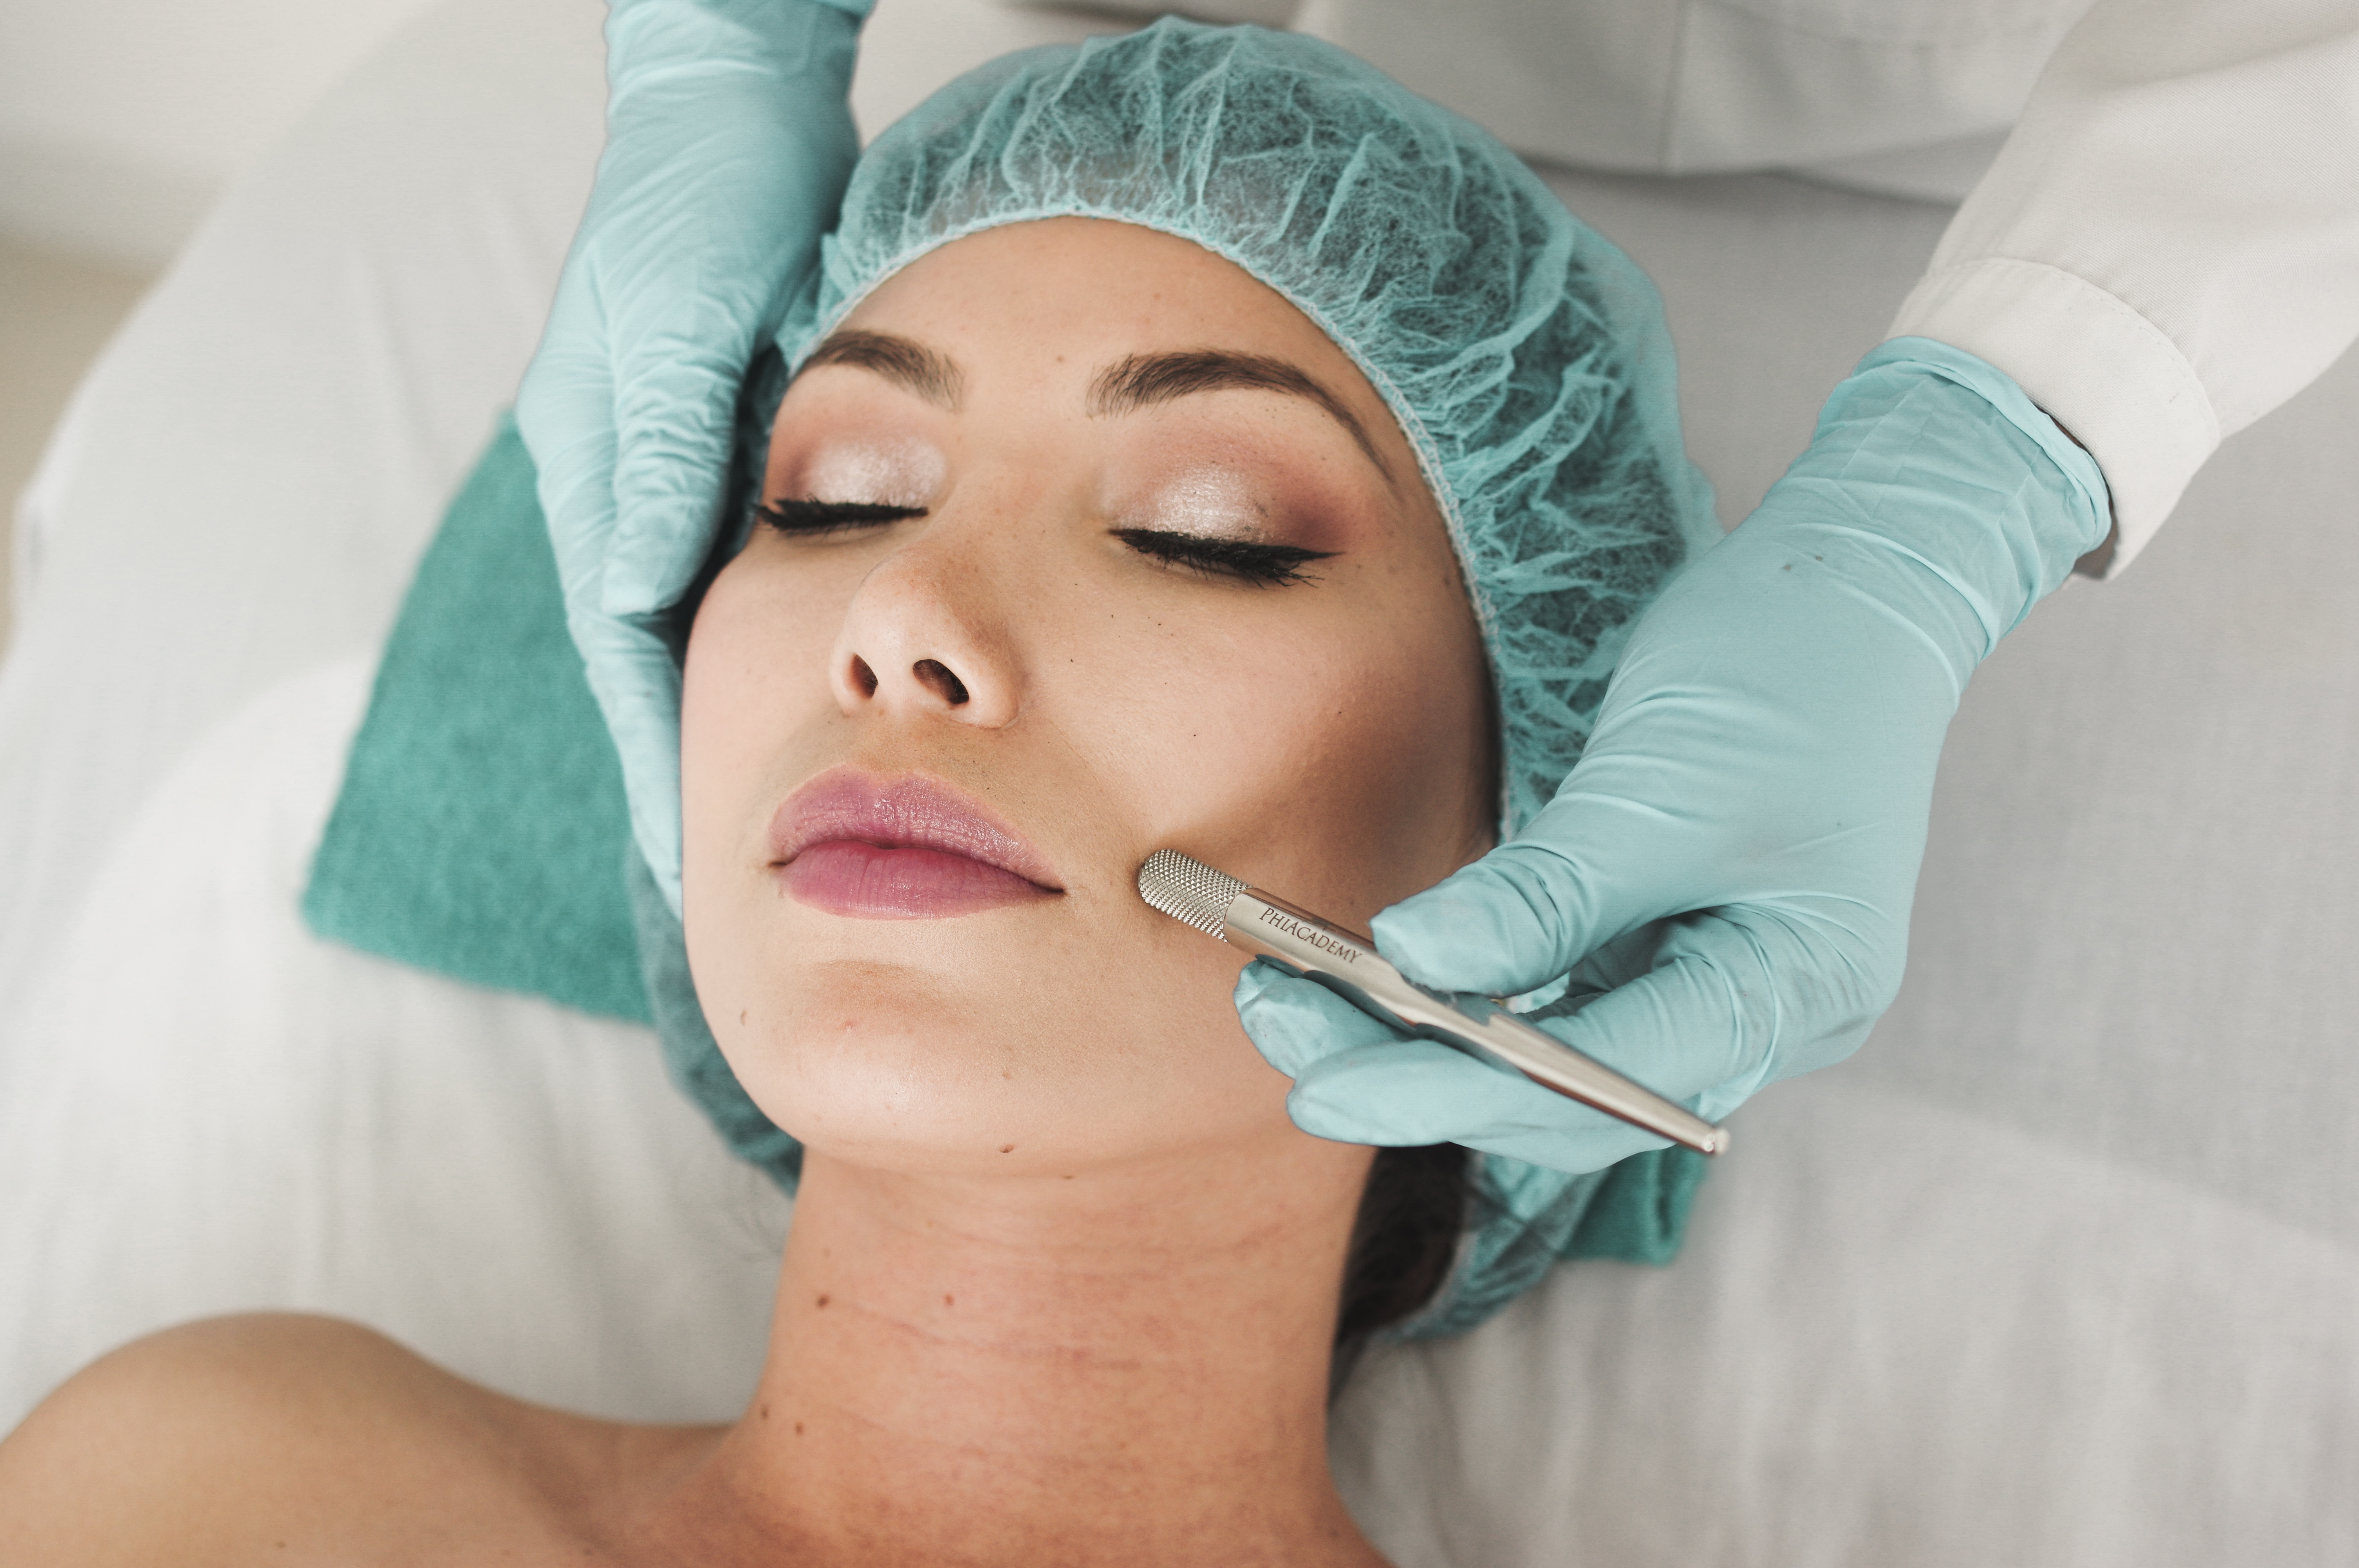 A woman in a medical spa receives a skin treatment